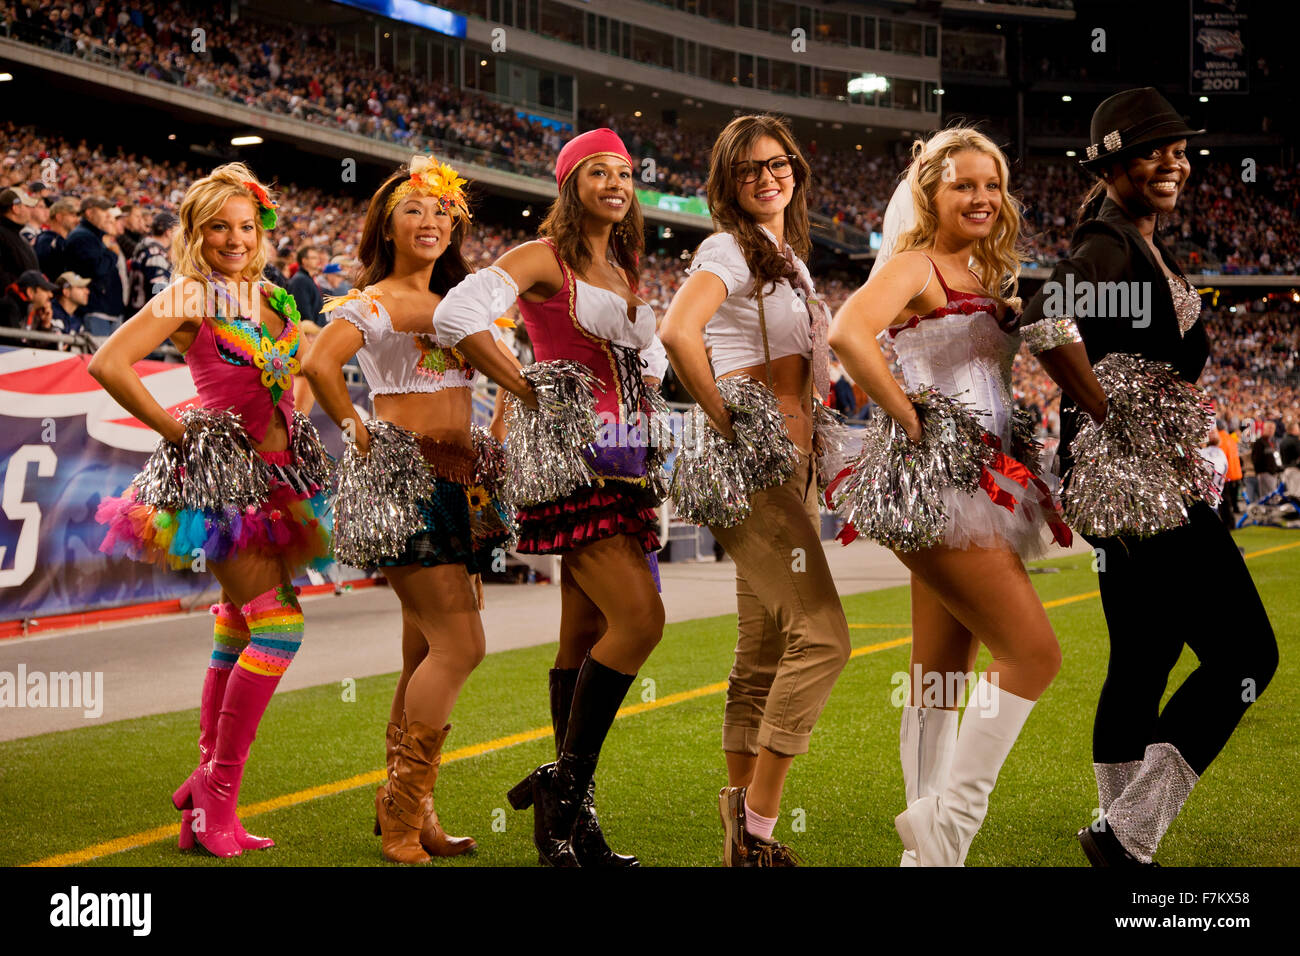 New England Patriot cheerleaders in Halloween costume at Gillette Stadium the home of Super Bowl ch&s New England Patriots NFL Team play against Dallas ...  sc 1 st  Alamy & New England Patriot cheerleaders in Halloween costume at Gillette ...